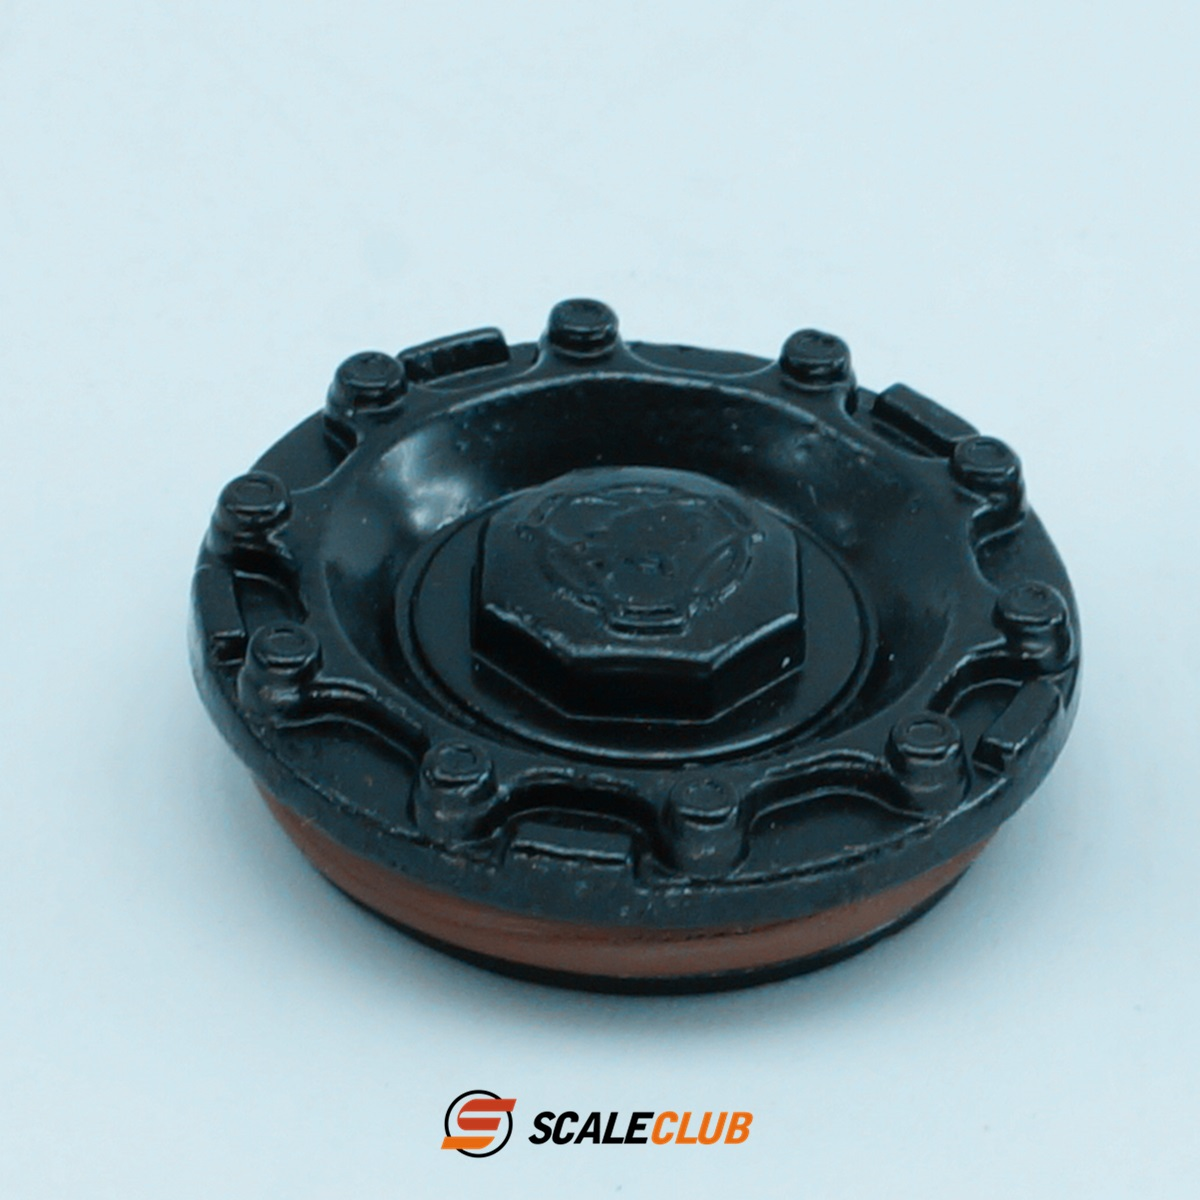 SCALECLUB  1/14 Universal  Axle head cover of truck powerless front axle